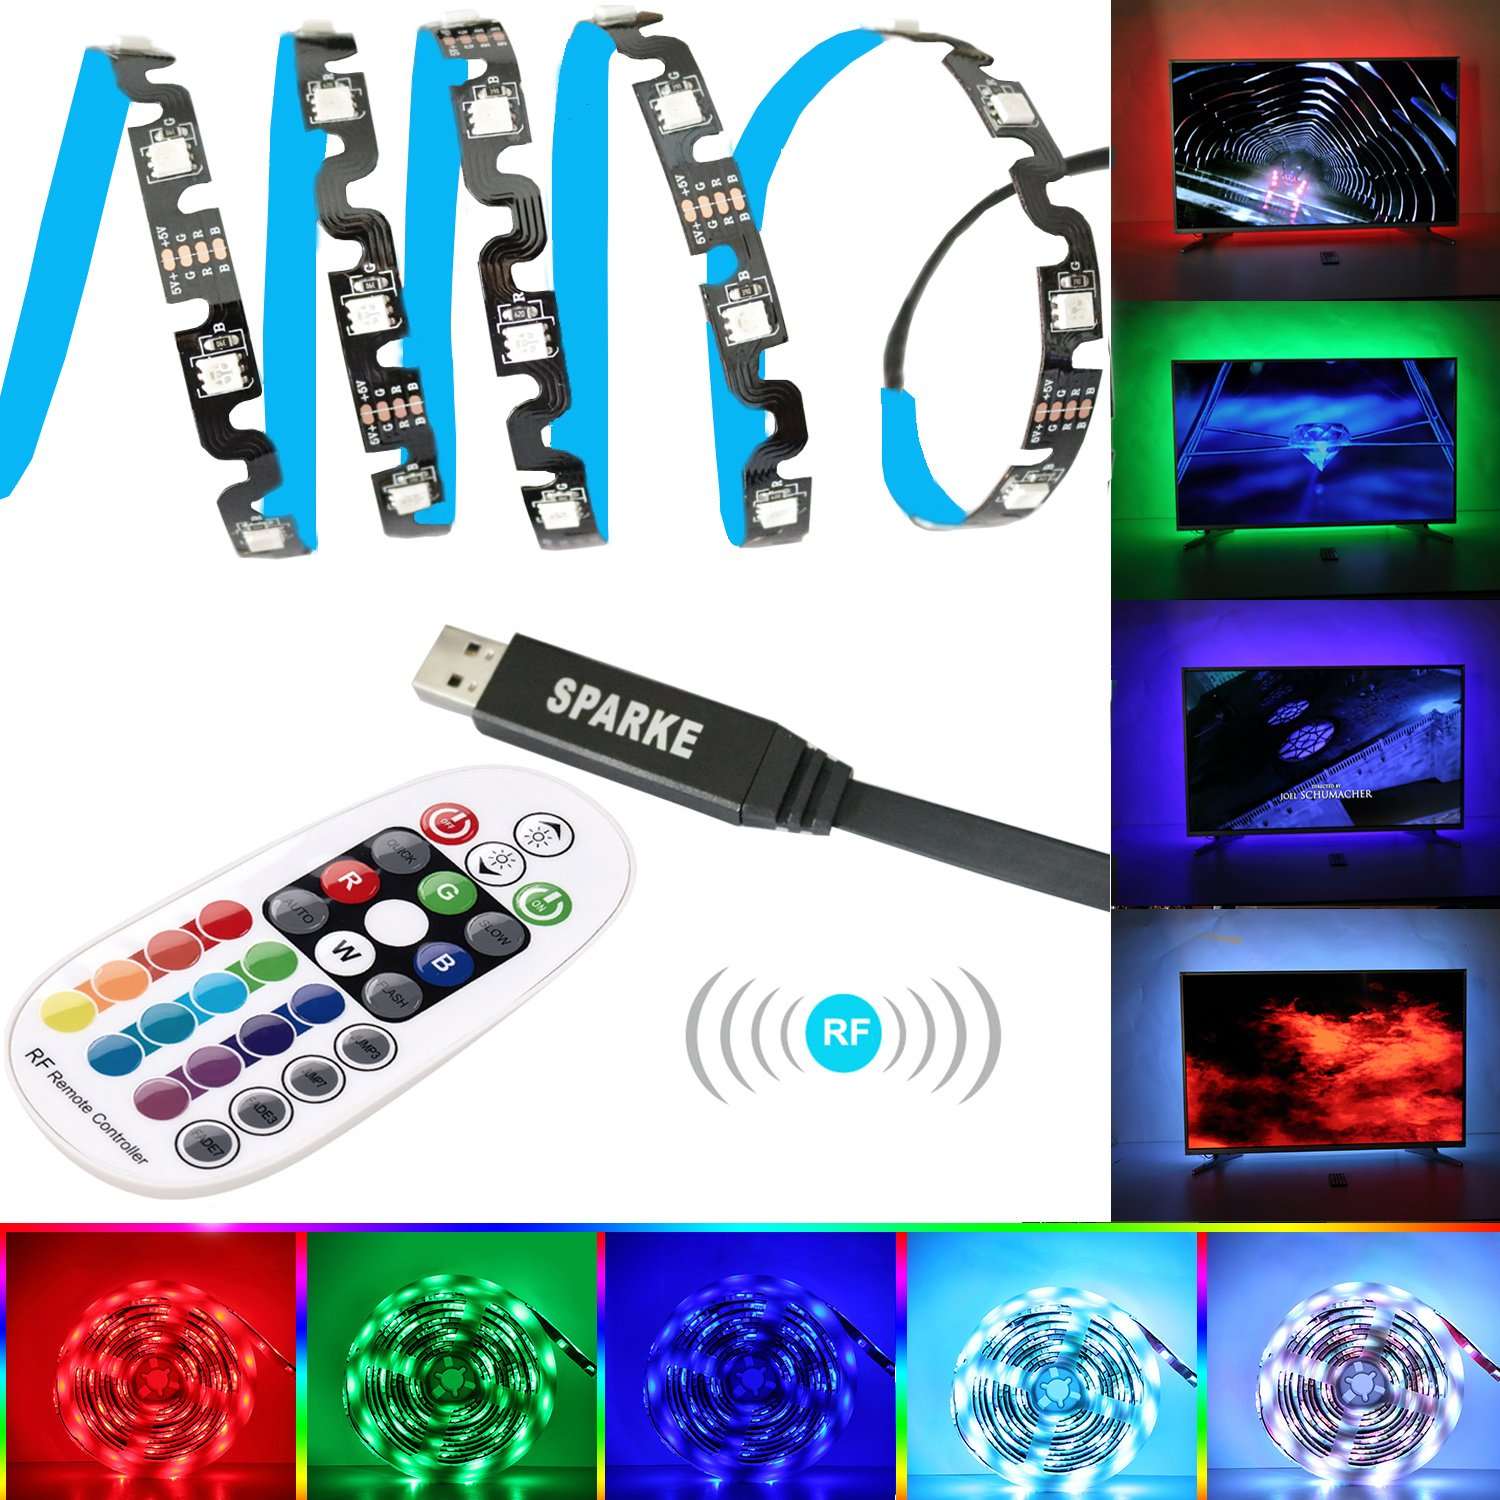 SPARKE LED RGB TV Backlight USB Powered 3meter 9.9feet 5050 Flexible Strip Light Kit with RF Remote Controller for Large Screen TV Monitor 45 70 Inches